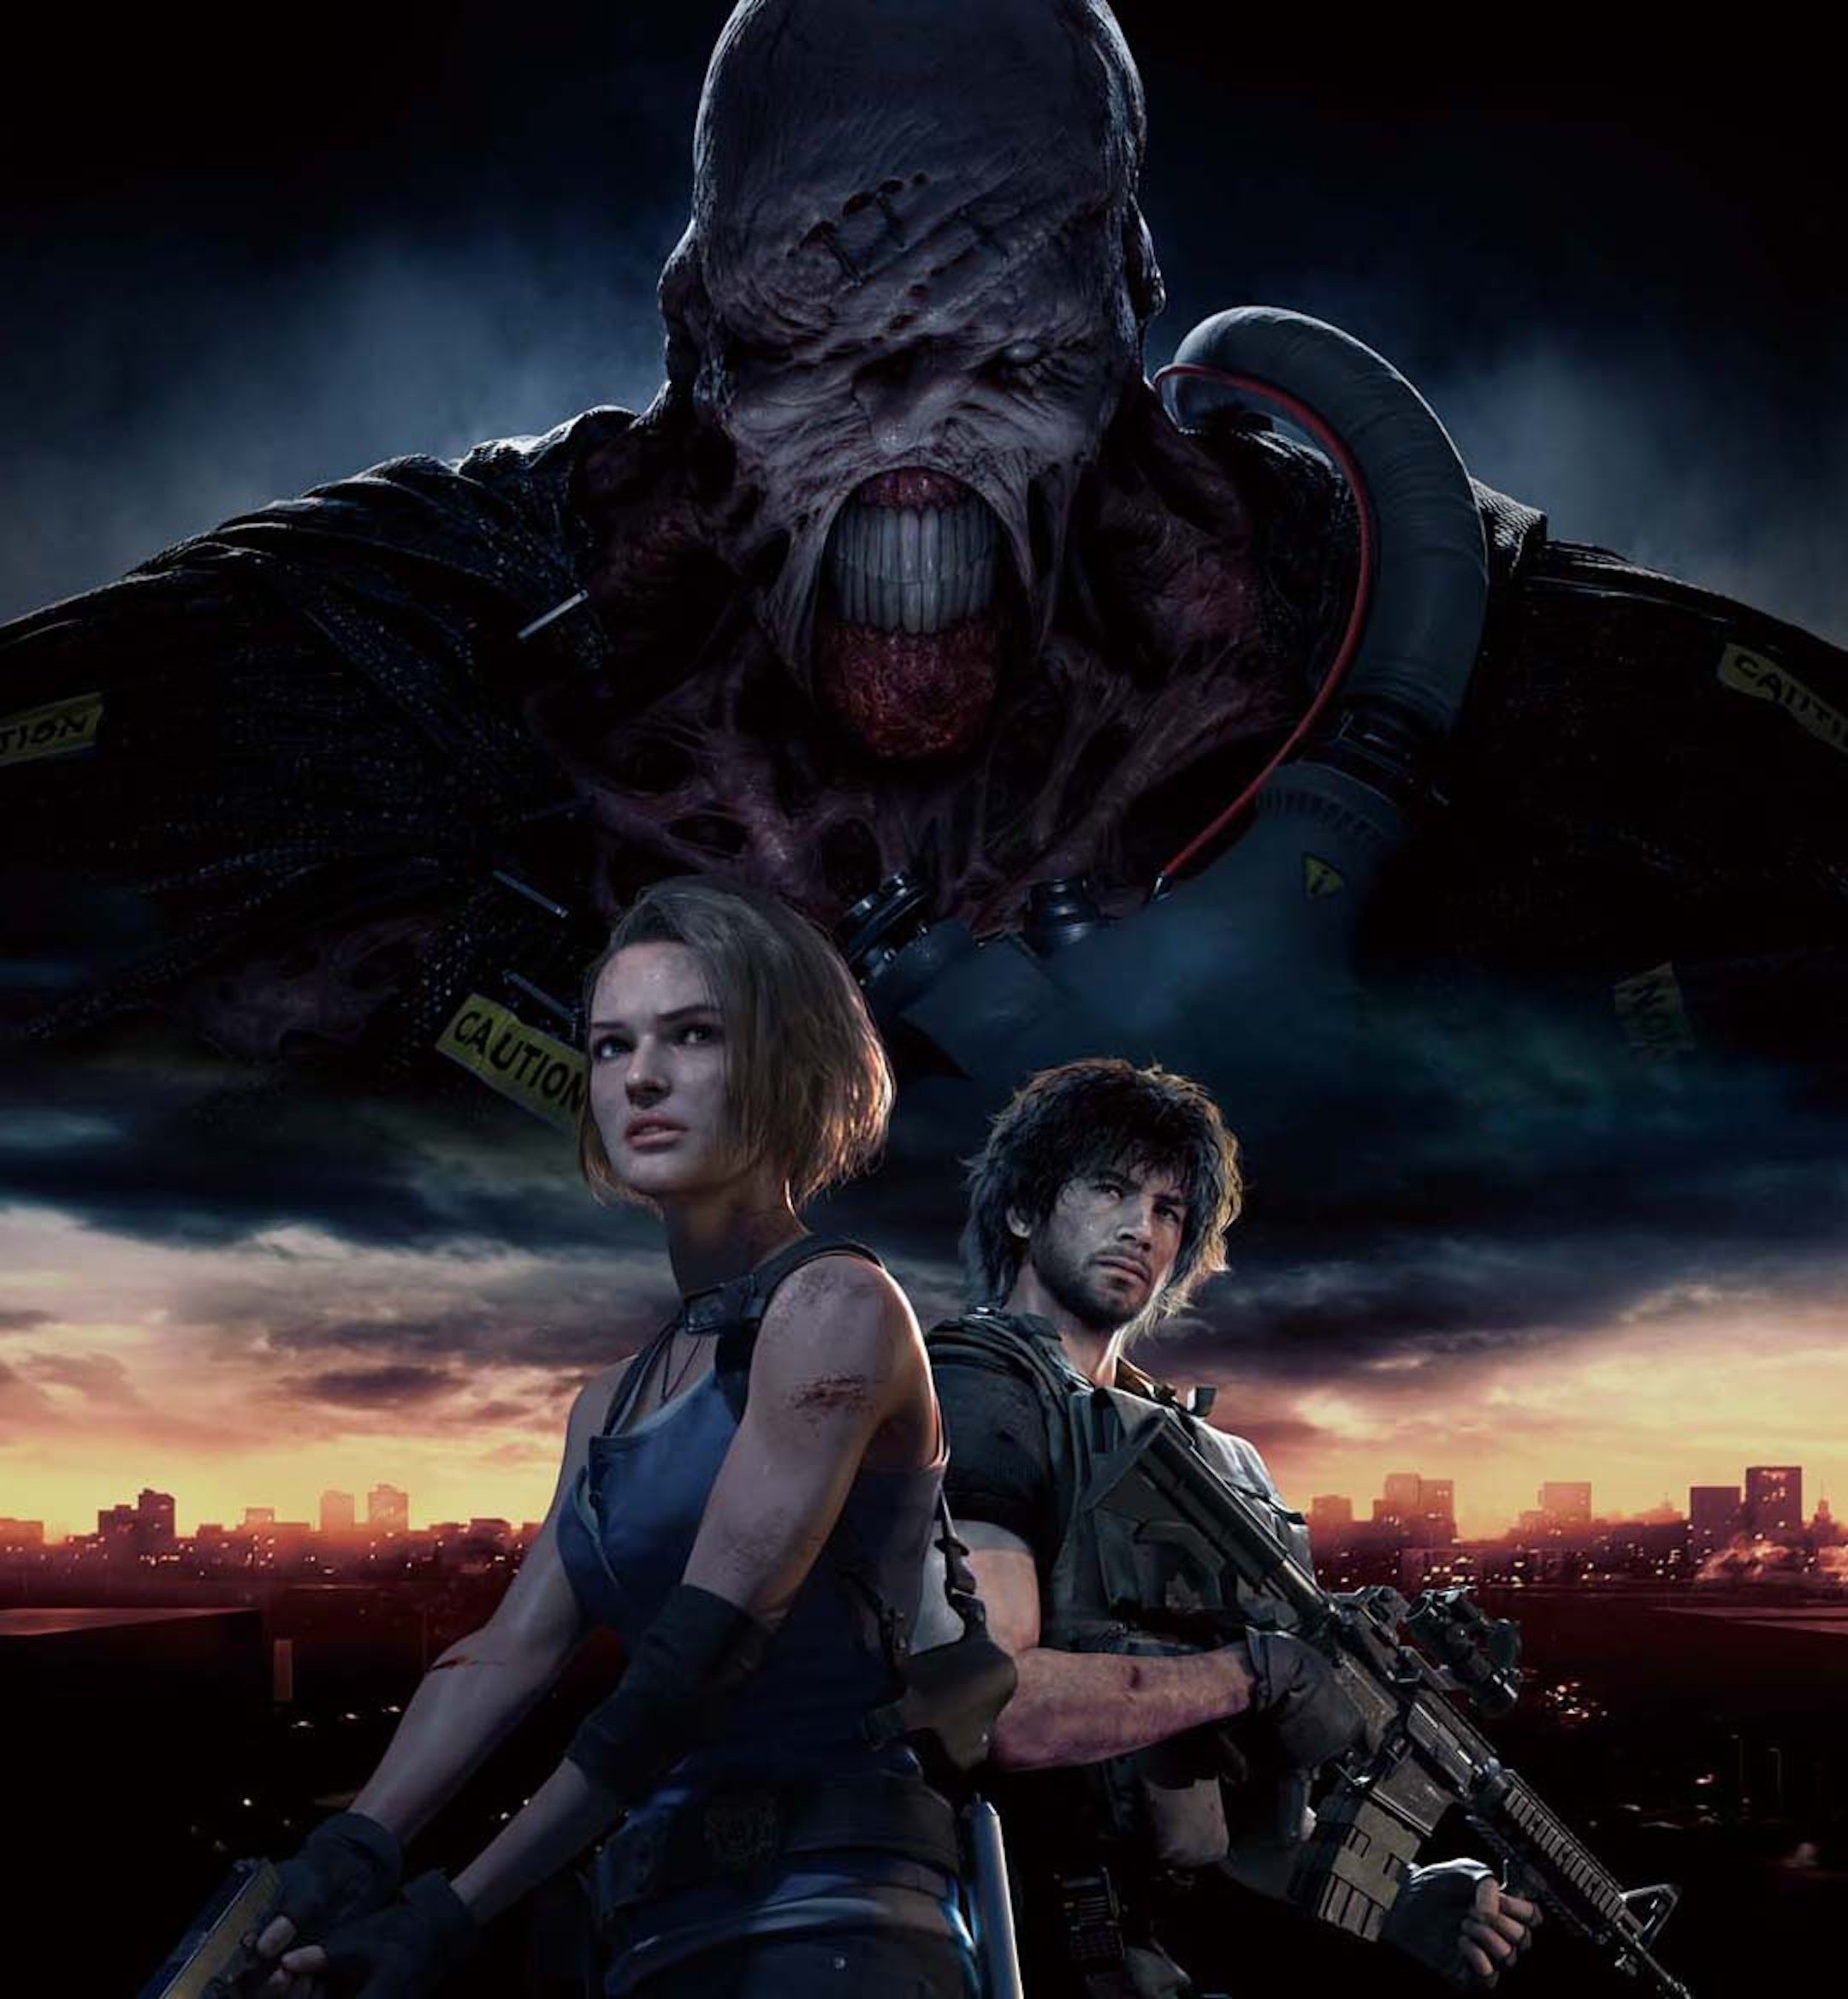 residentevil3remakehero 0